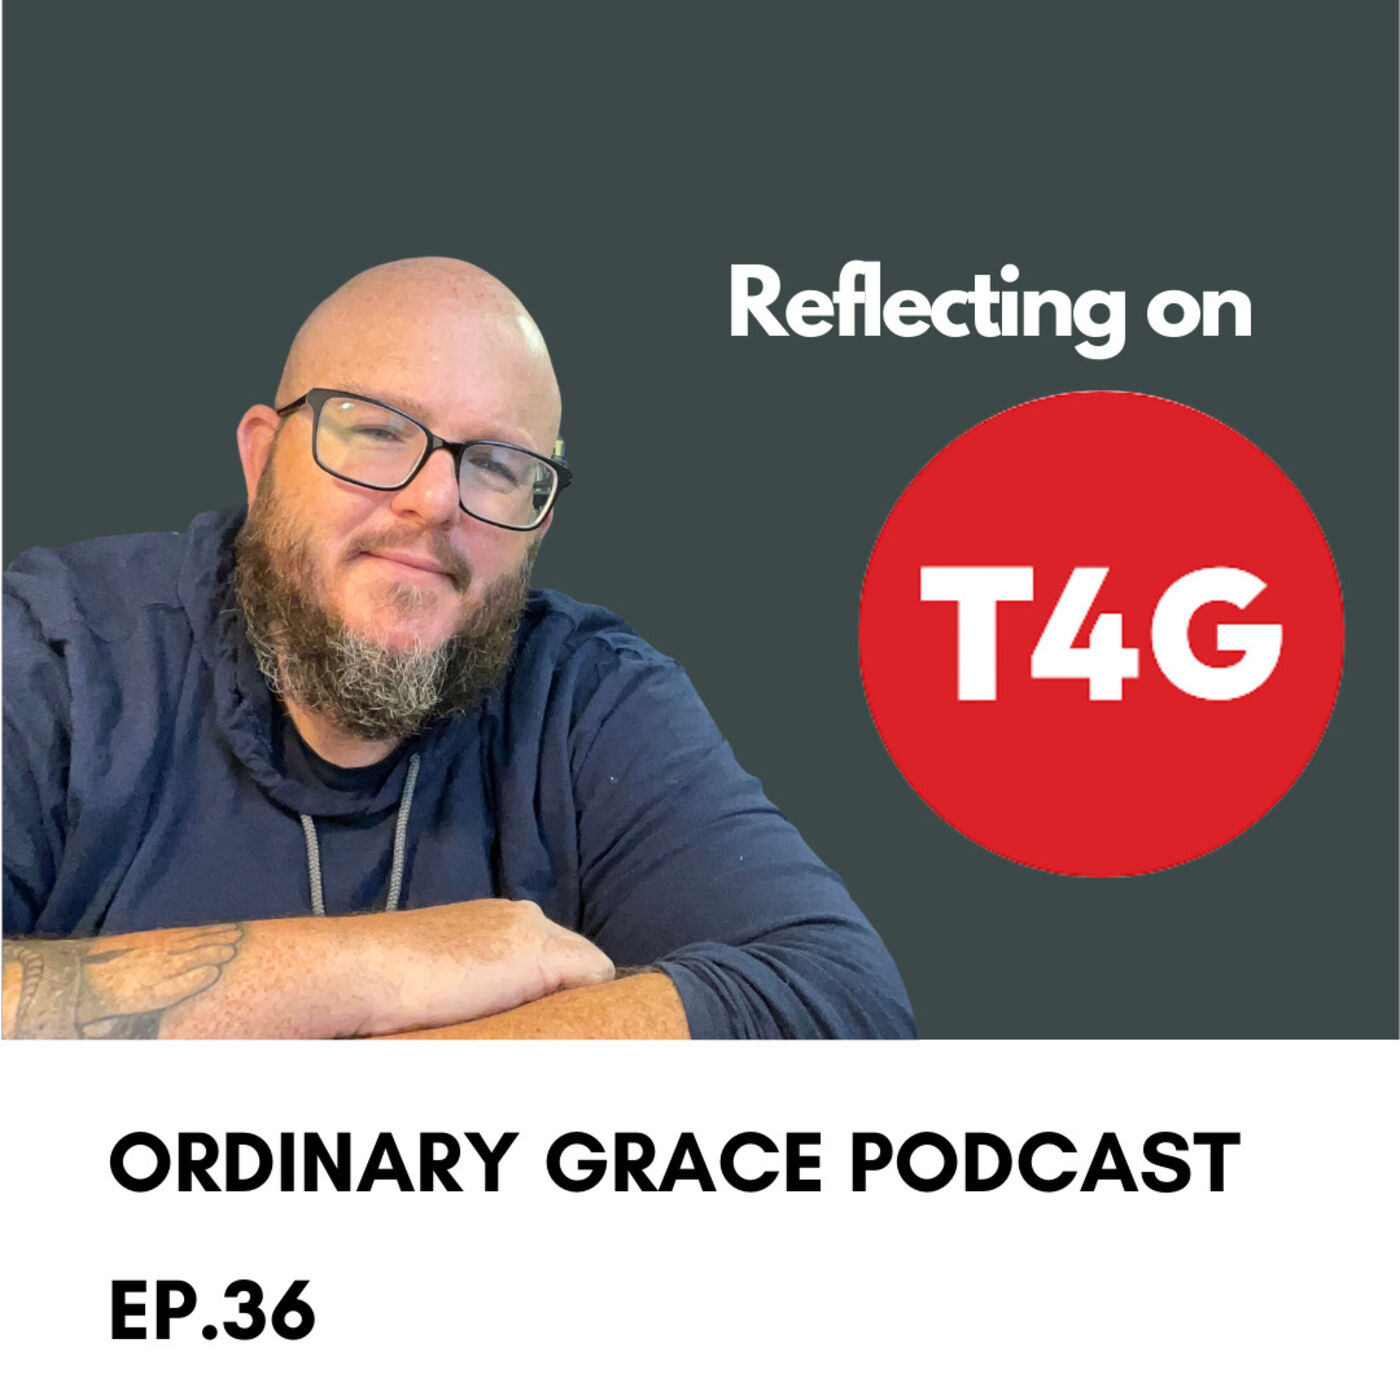 REFLECTING ON THE UPCOMING FINAL T4G